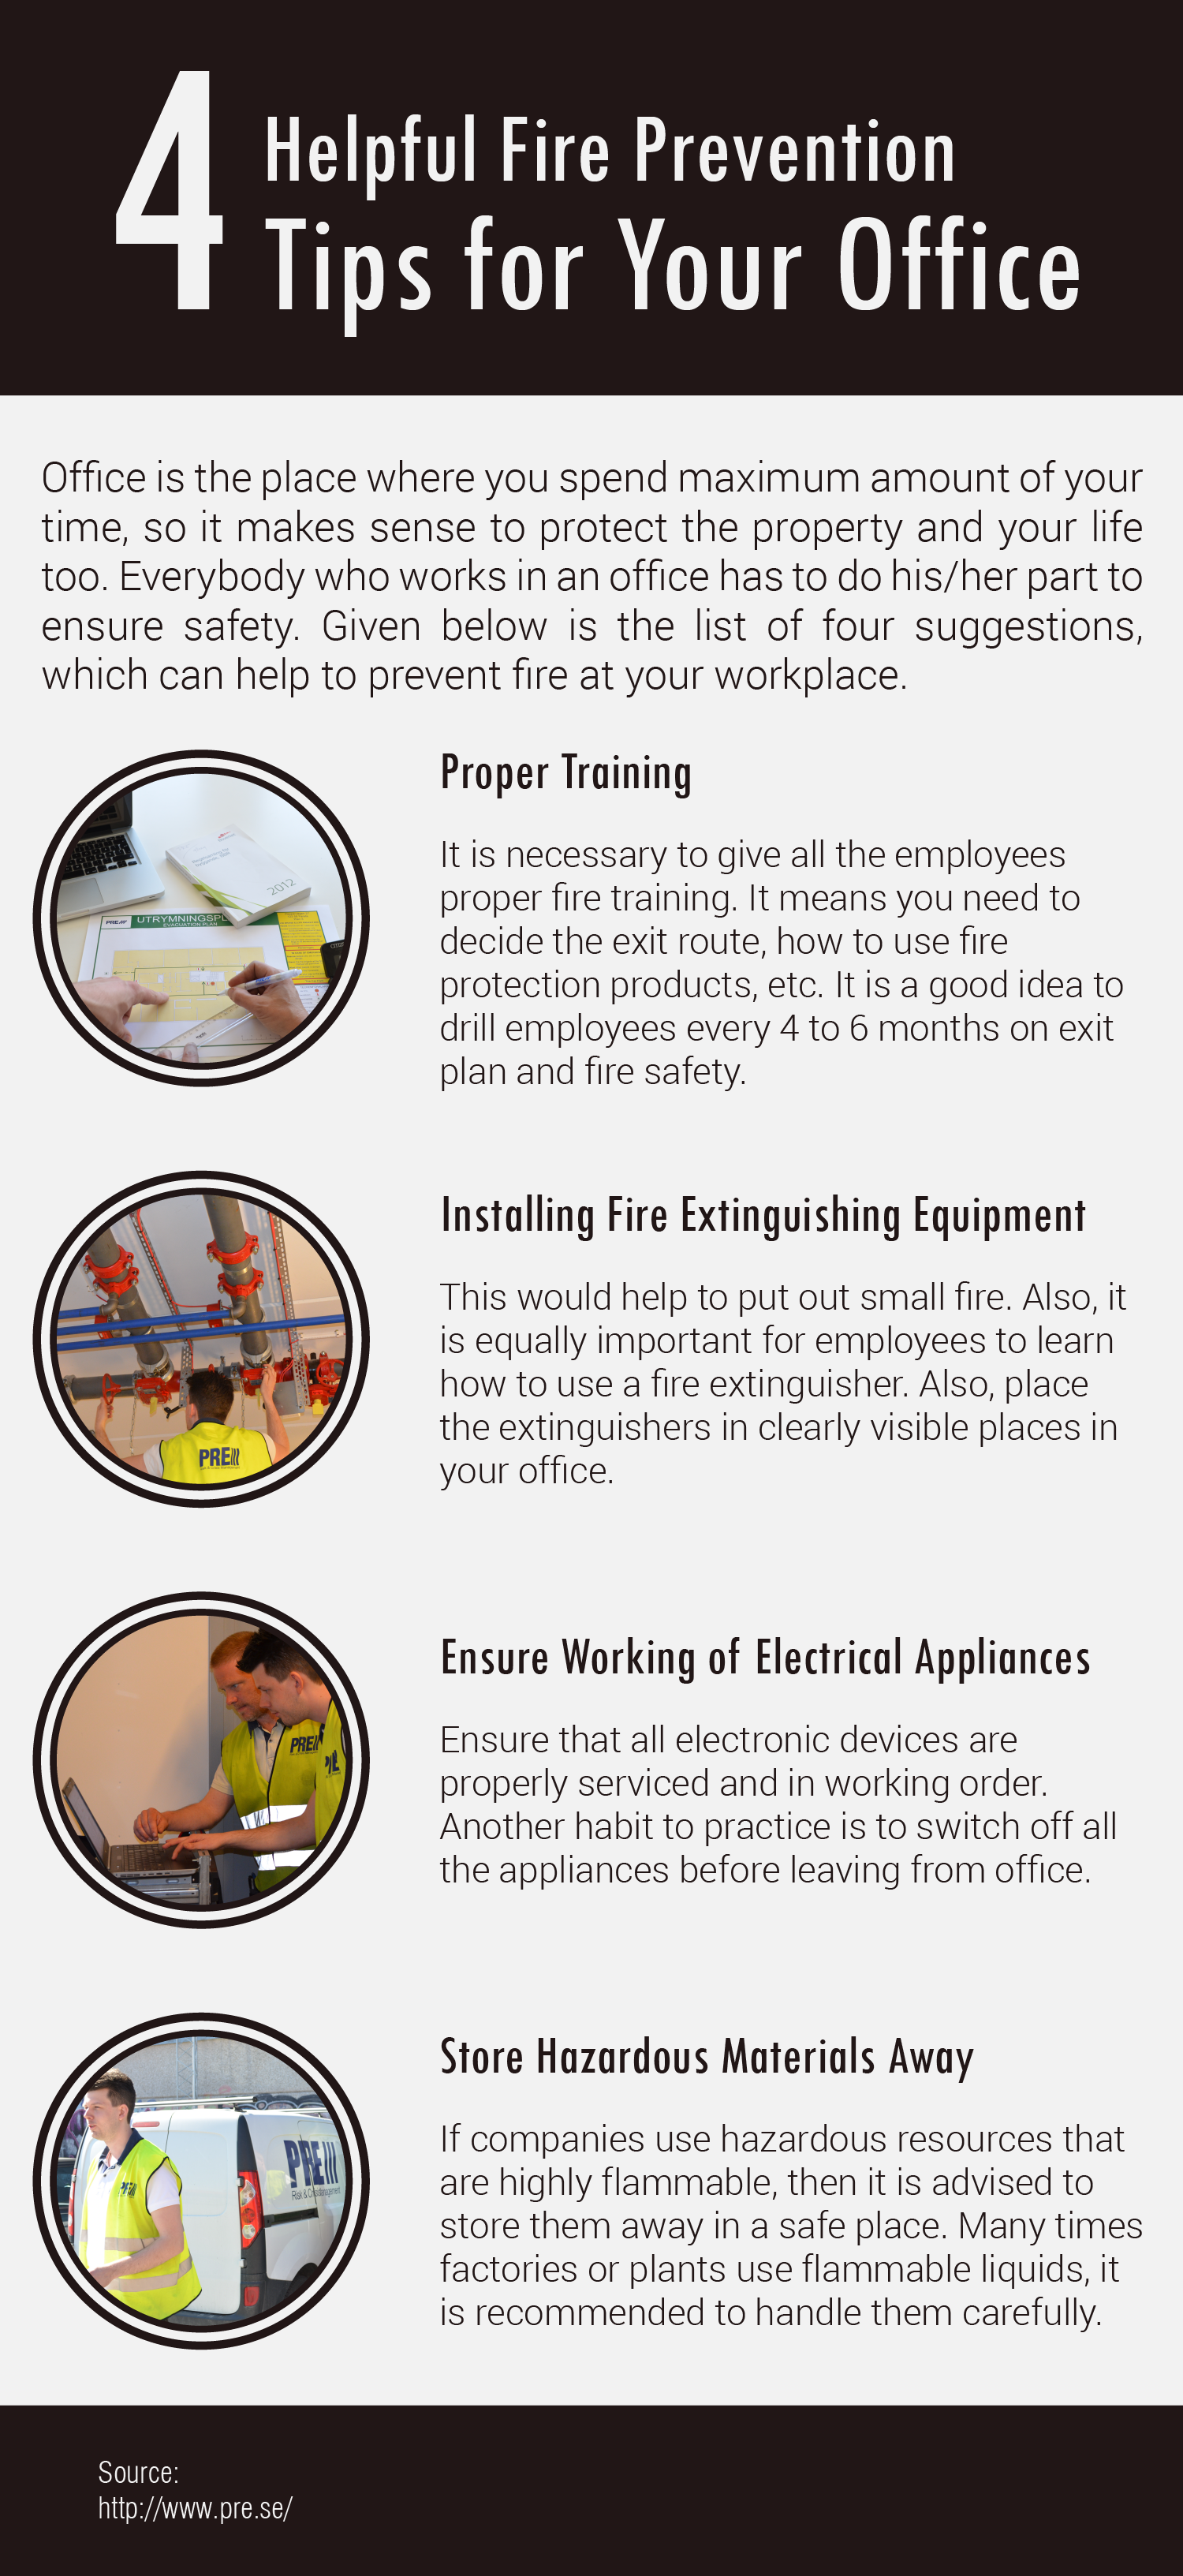 Fire prevention tips and fire protection training to the